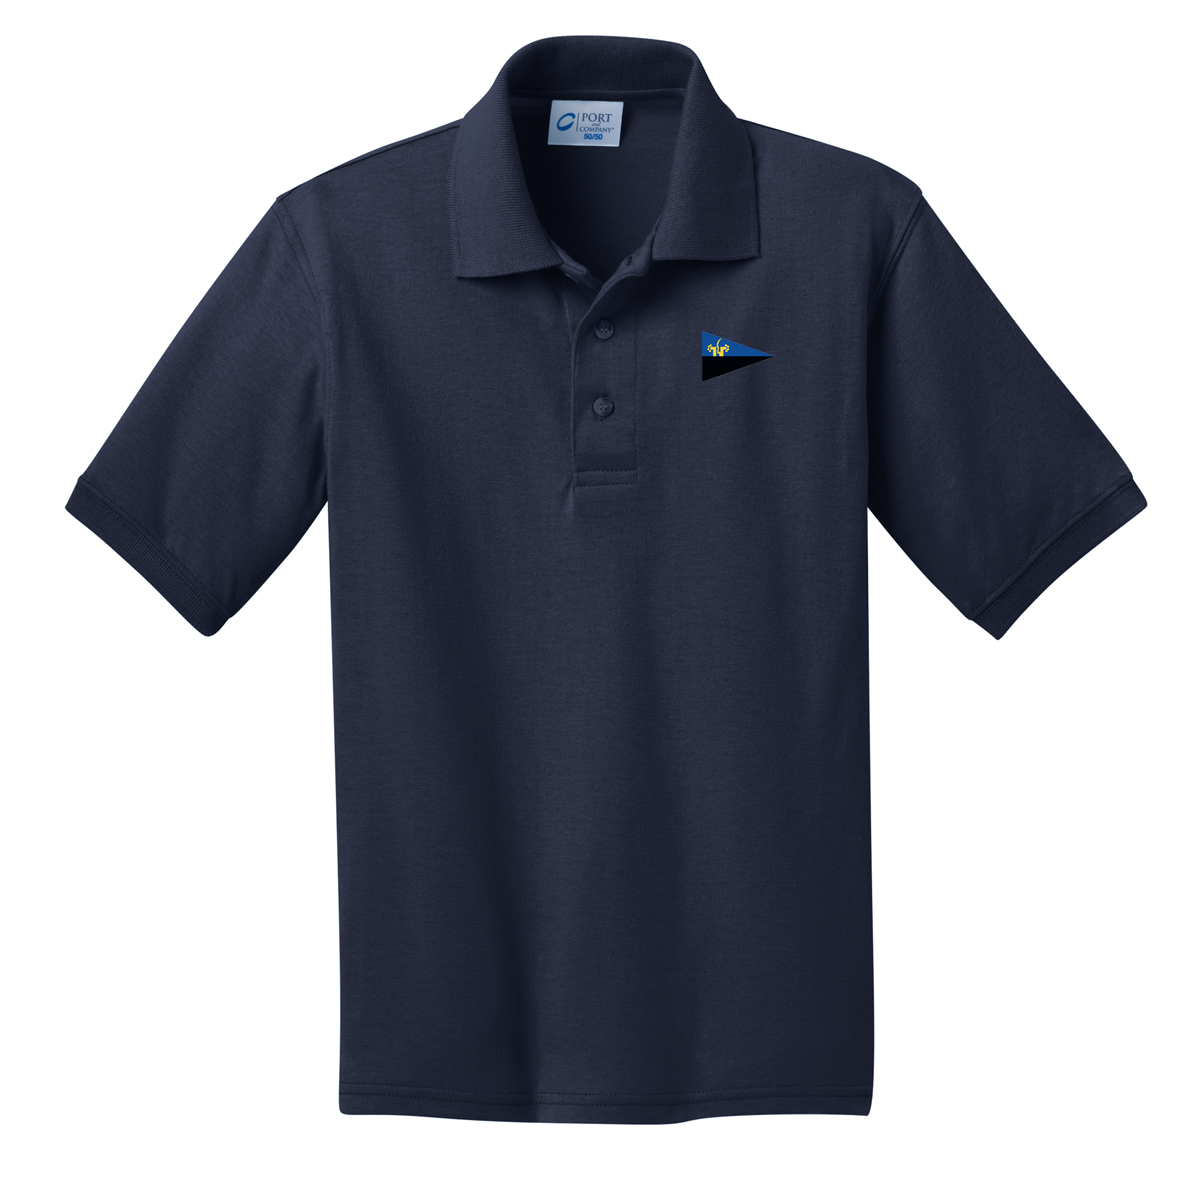 Mudratz - Youth Cotton Polo (MDR10)